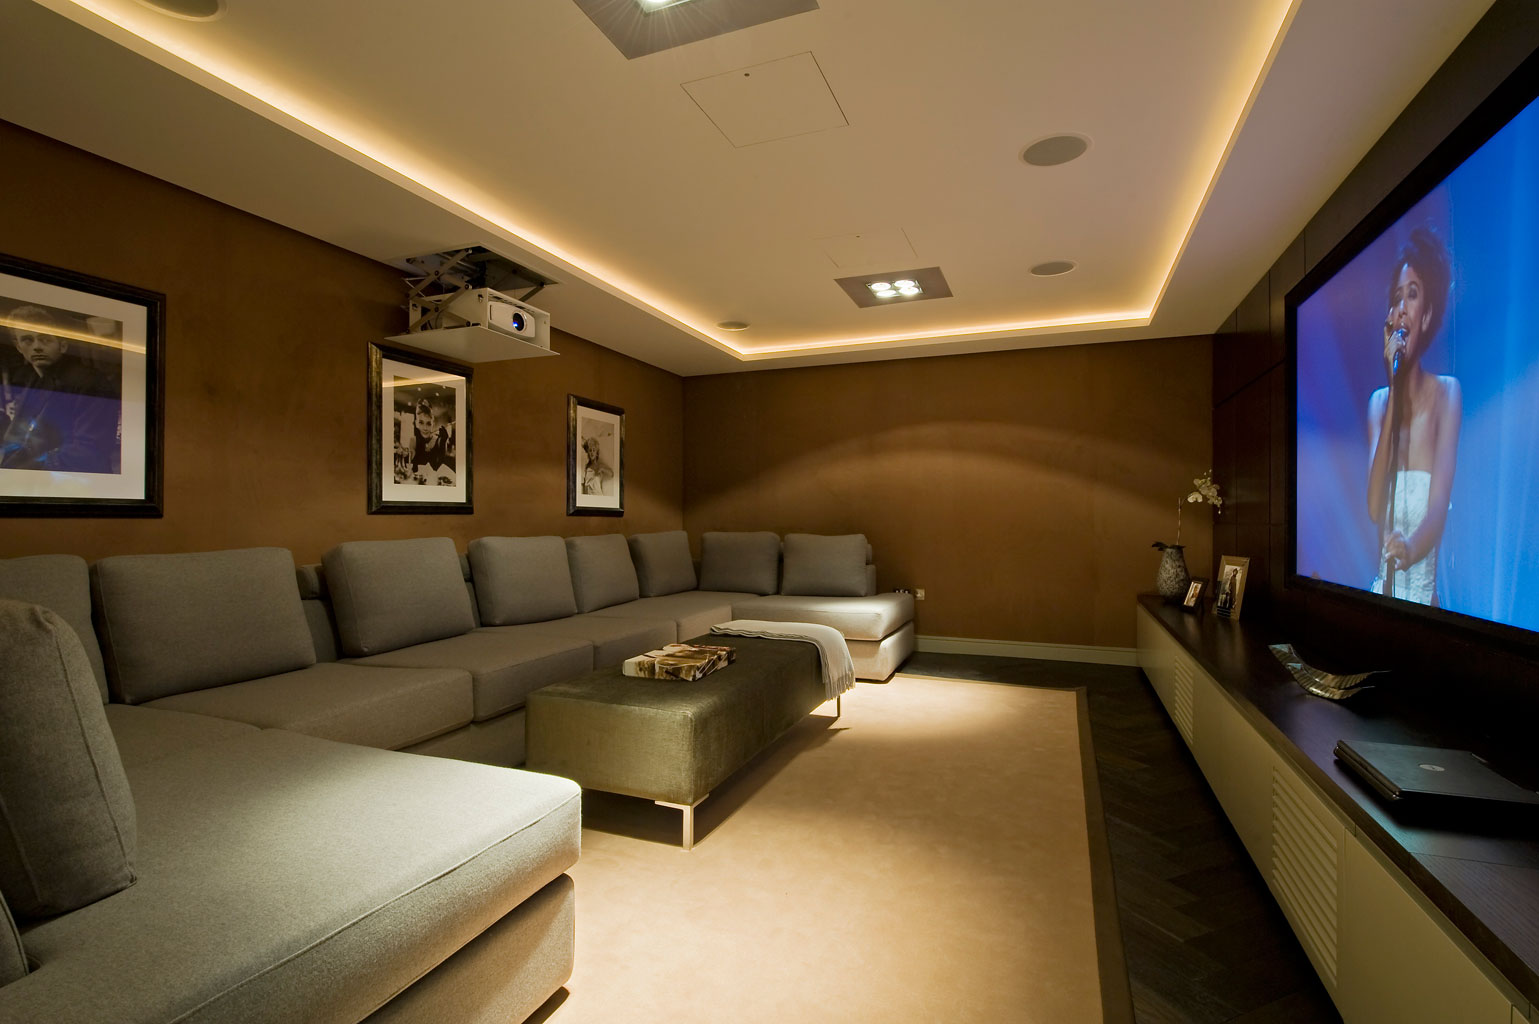 Home theater as addition to large modern interior small design ideas Modern home theater design ideas